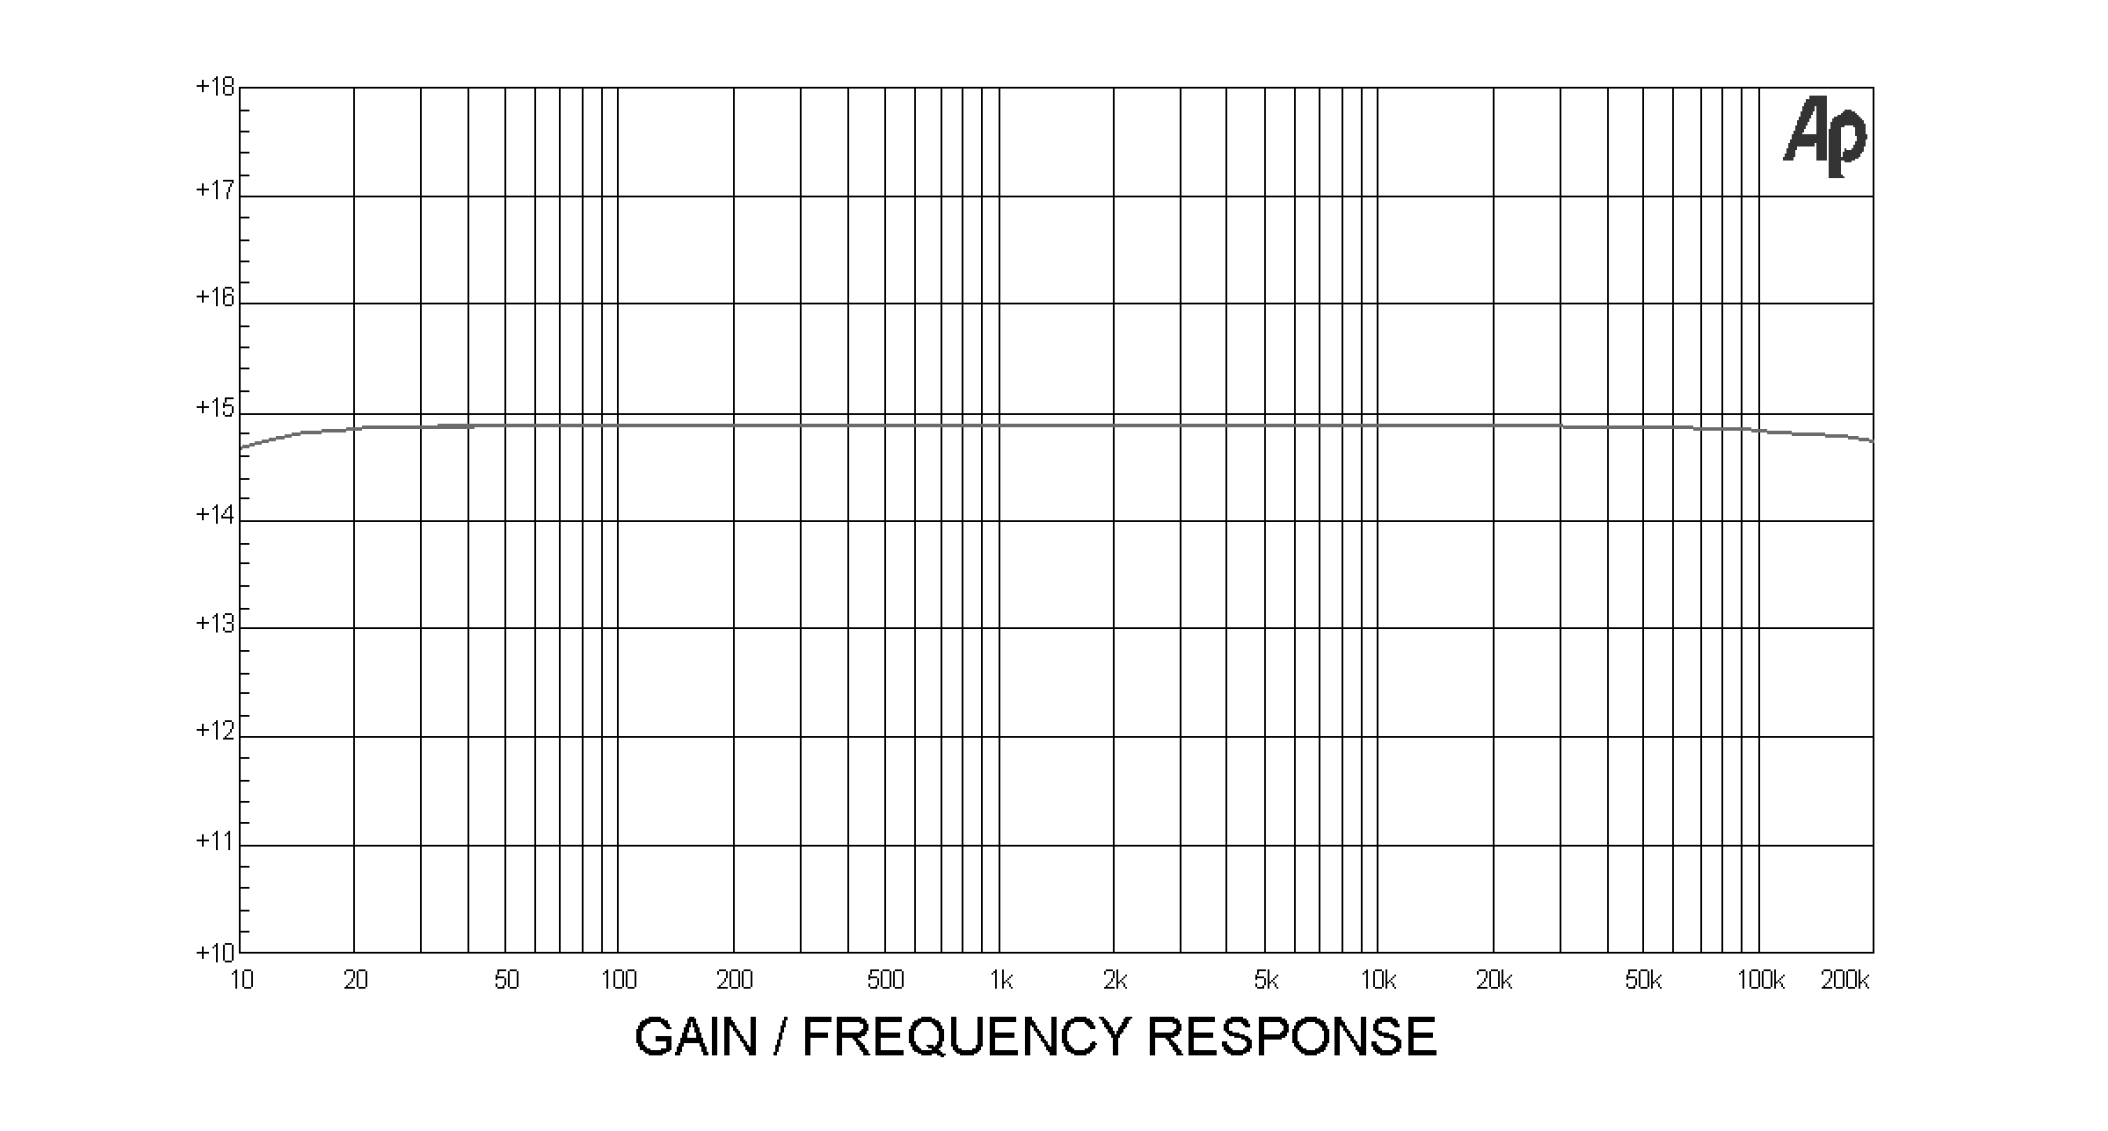 Gain/Frequency Response